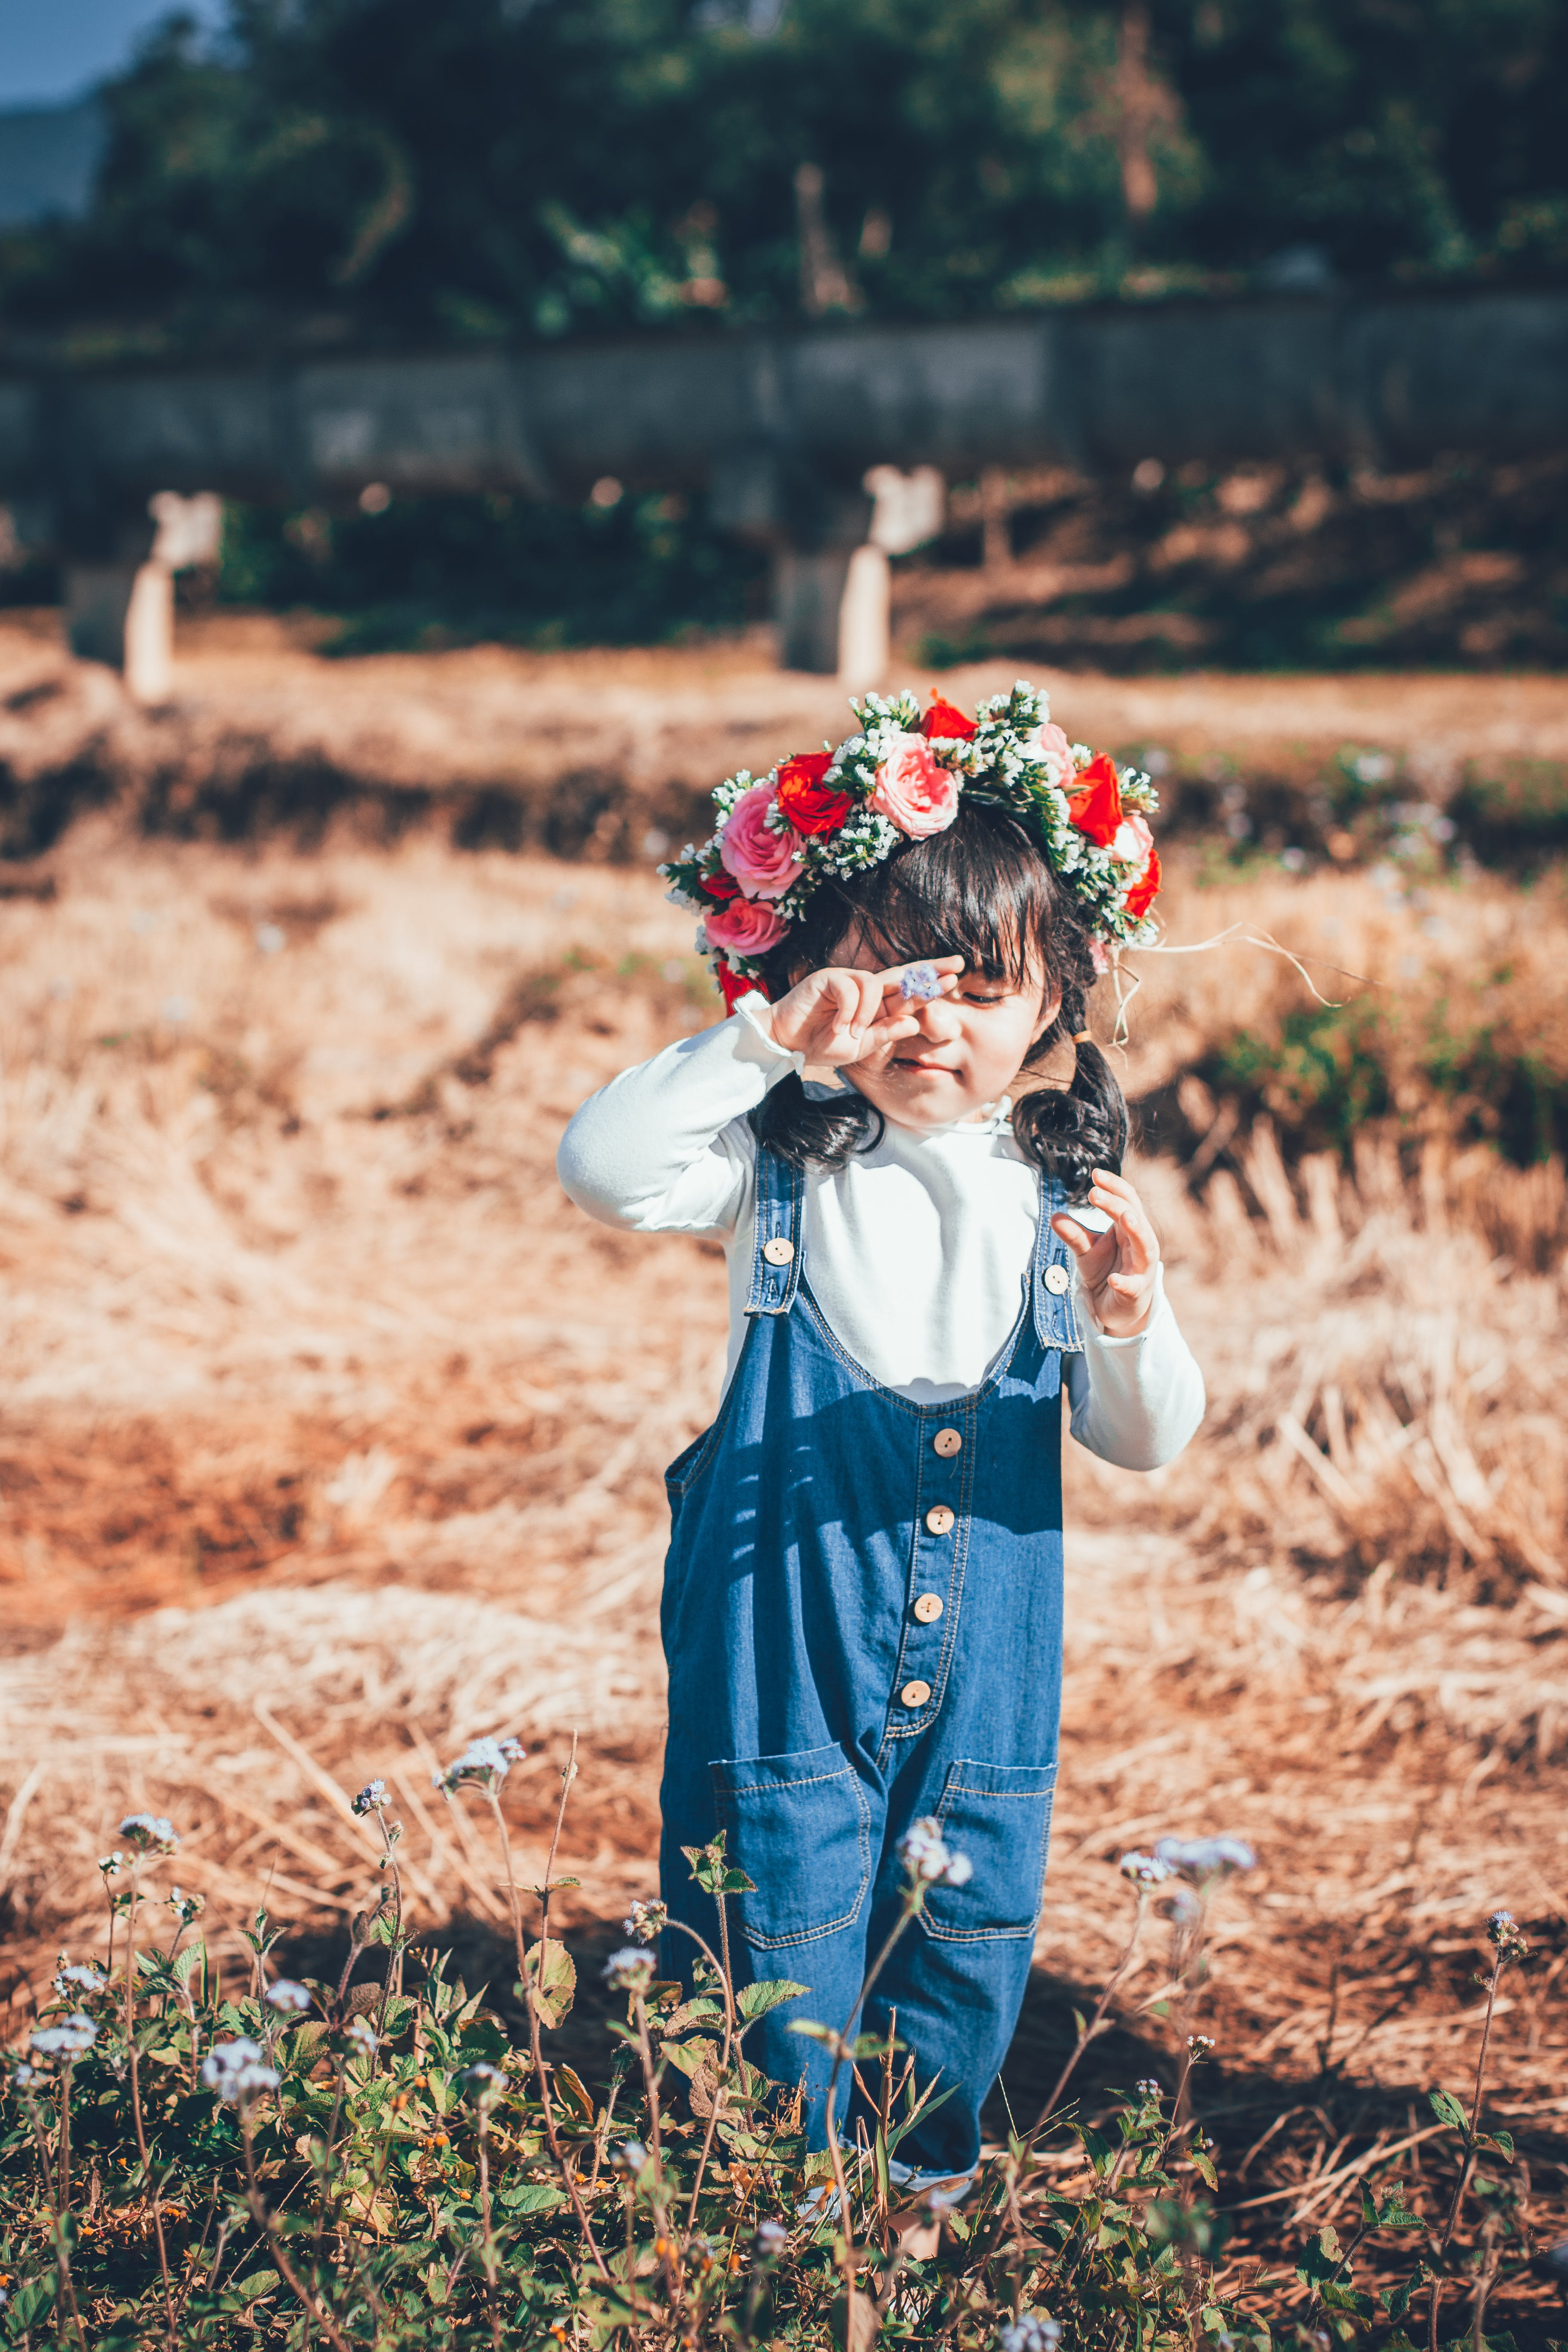 Girl Standing on Ground With Floral Headdress